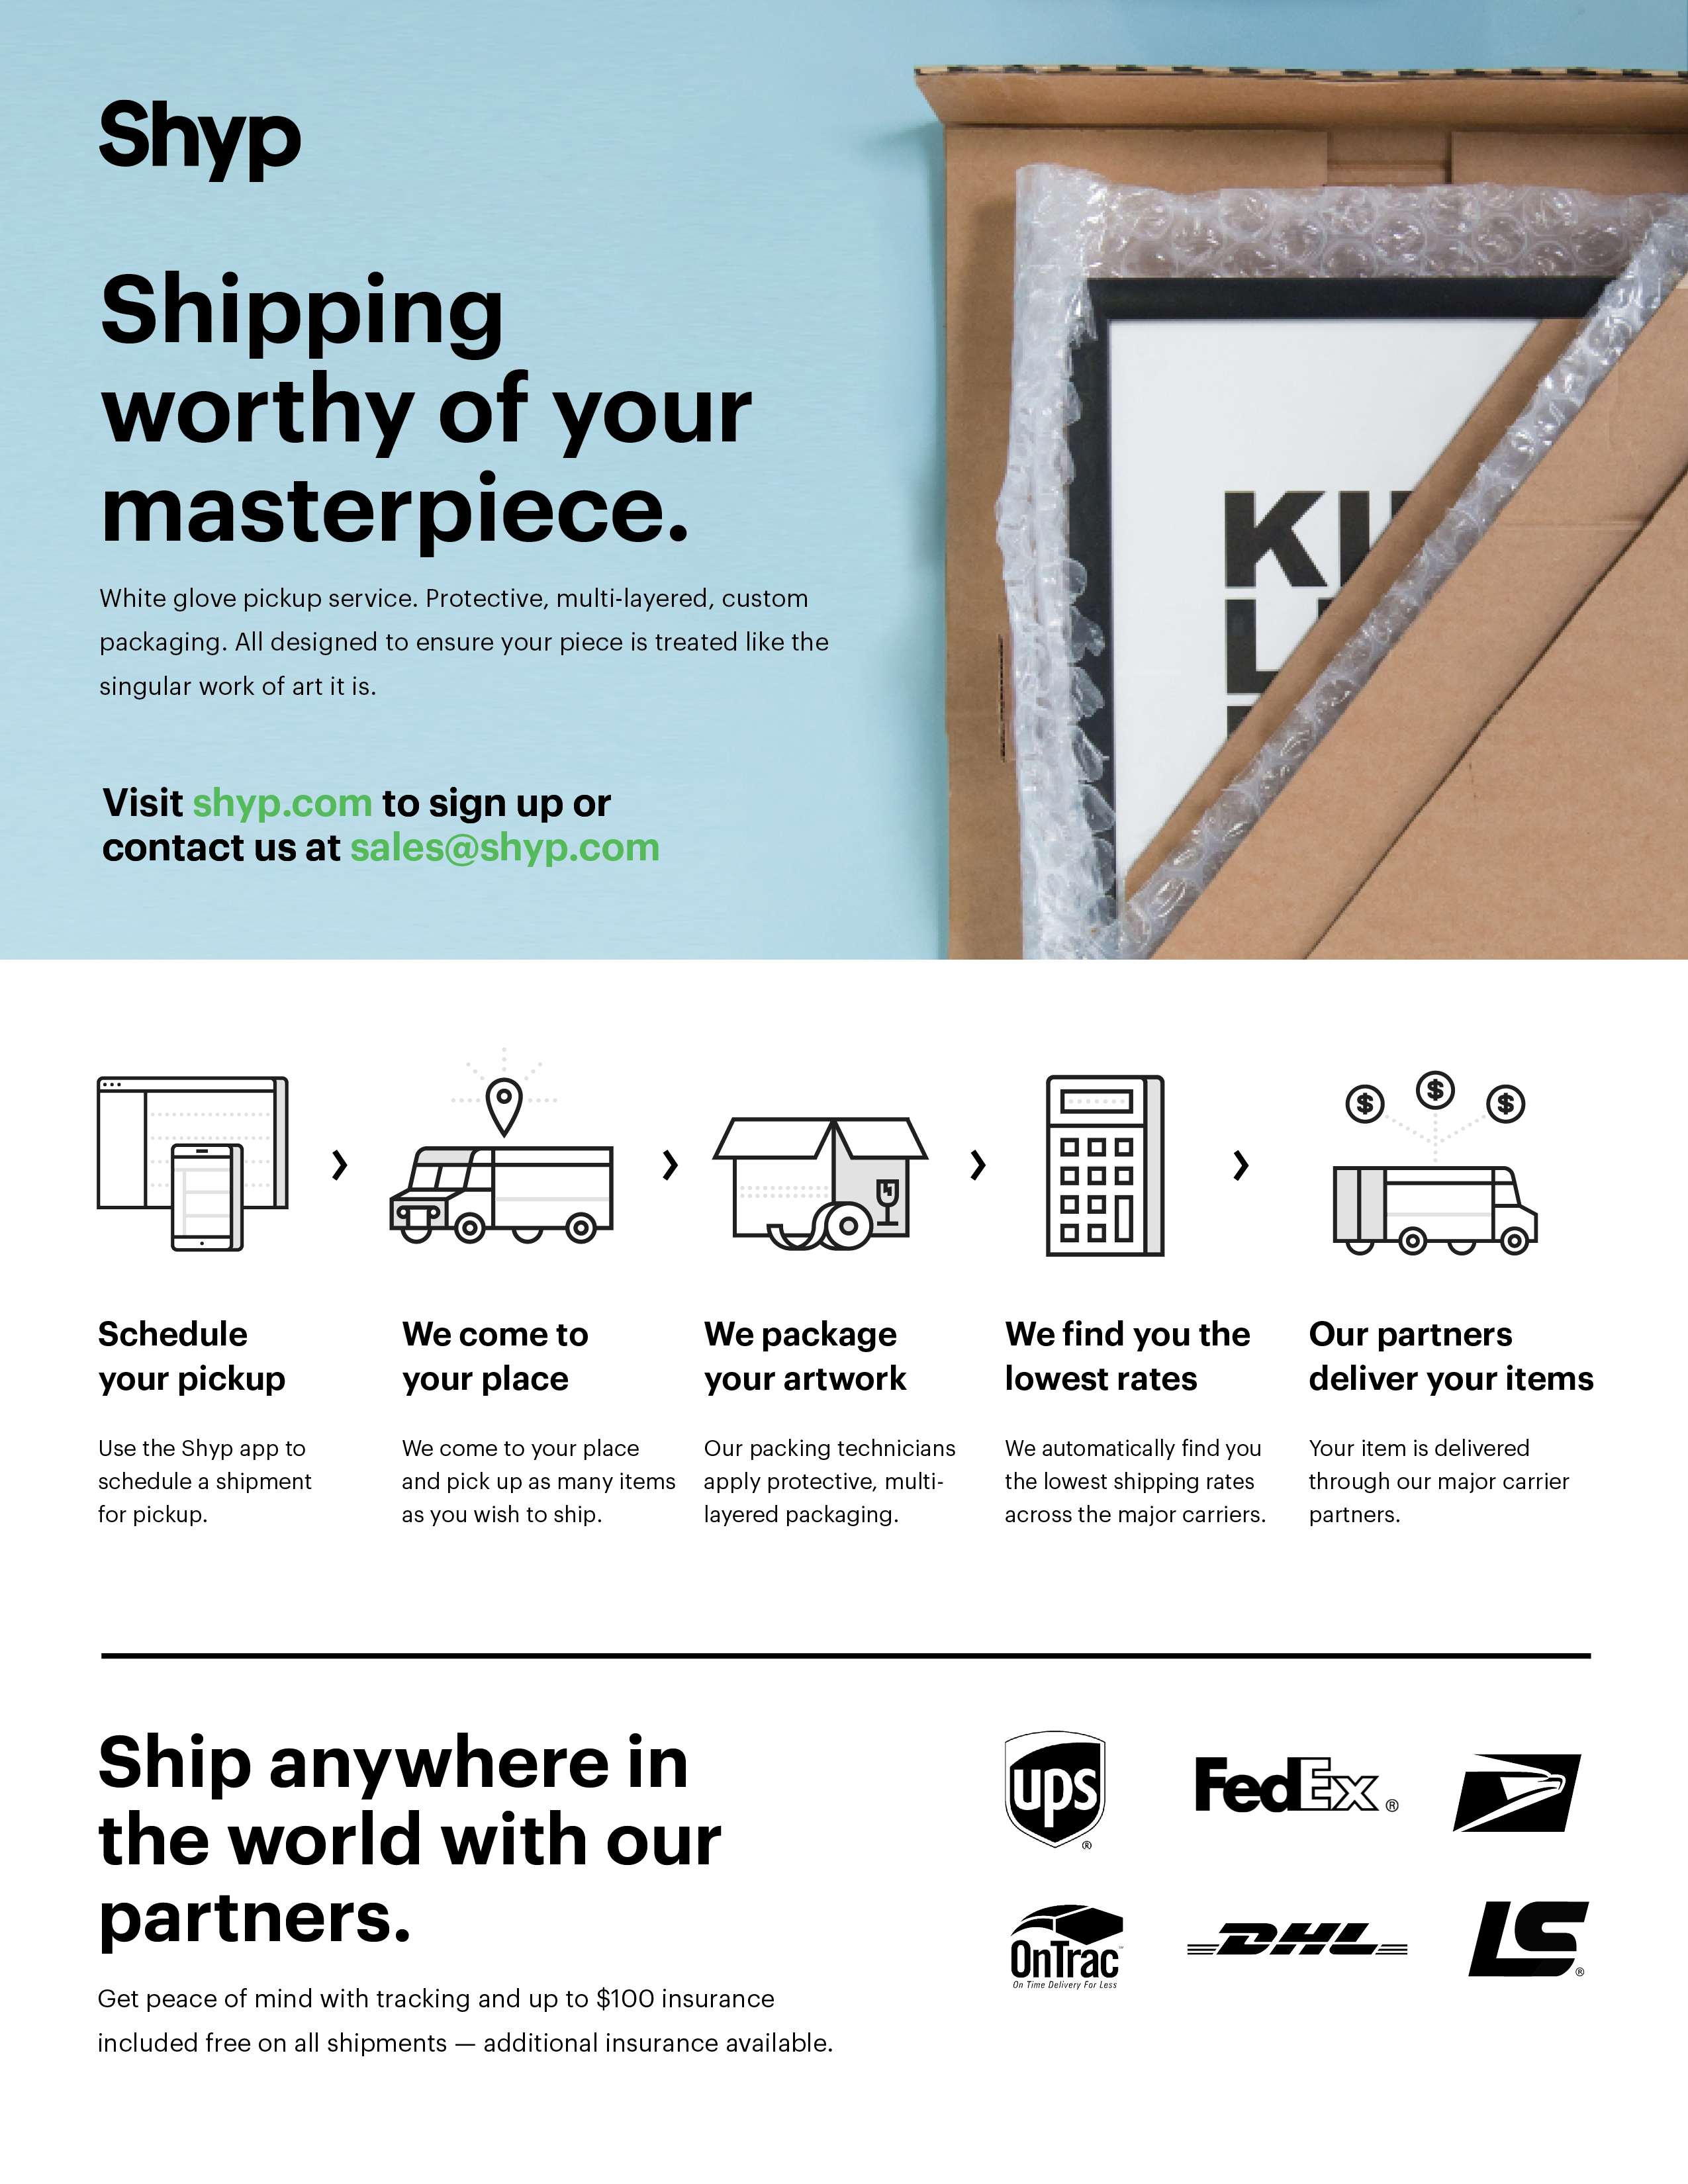 Shyp-Fulfillment-Art-front